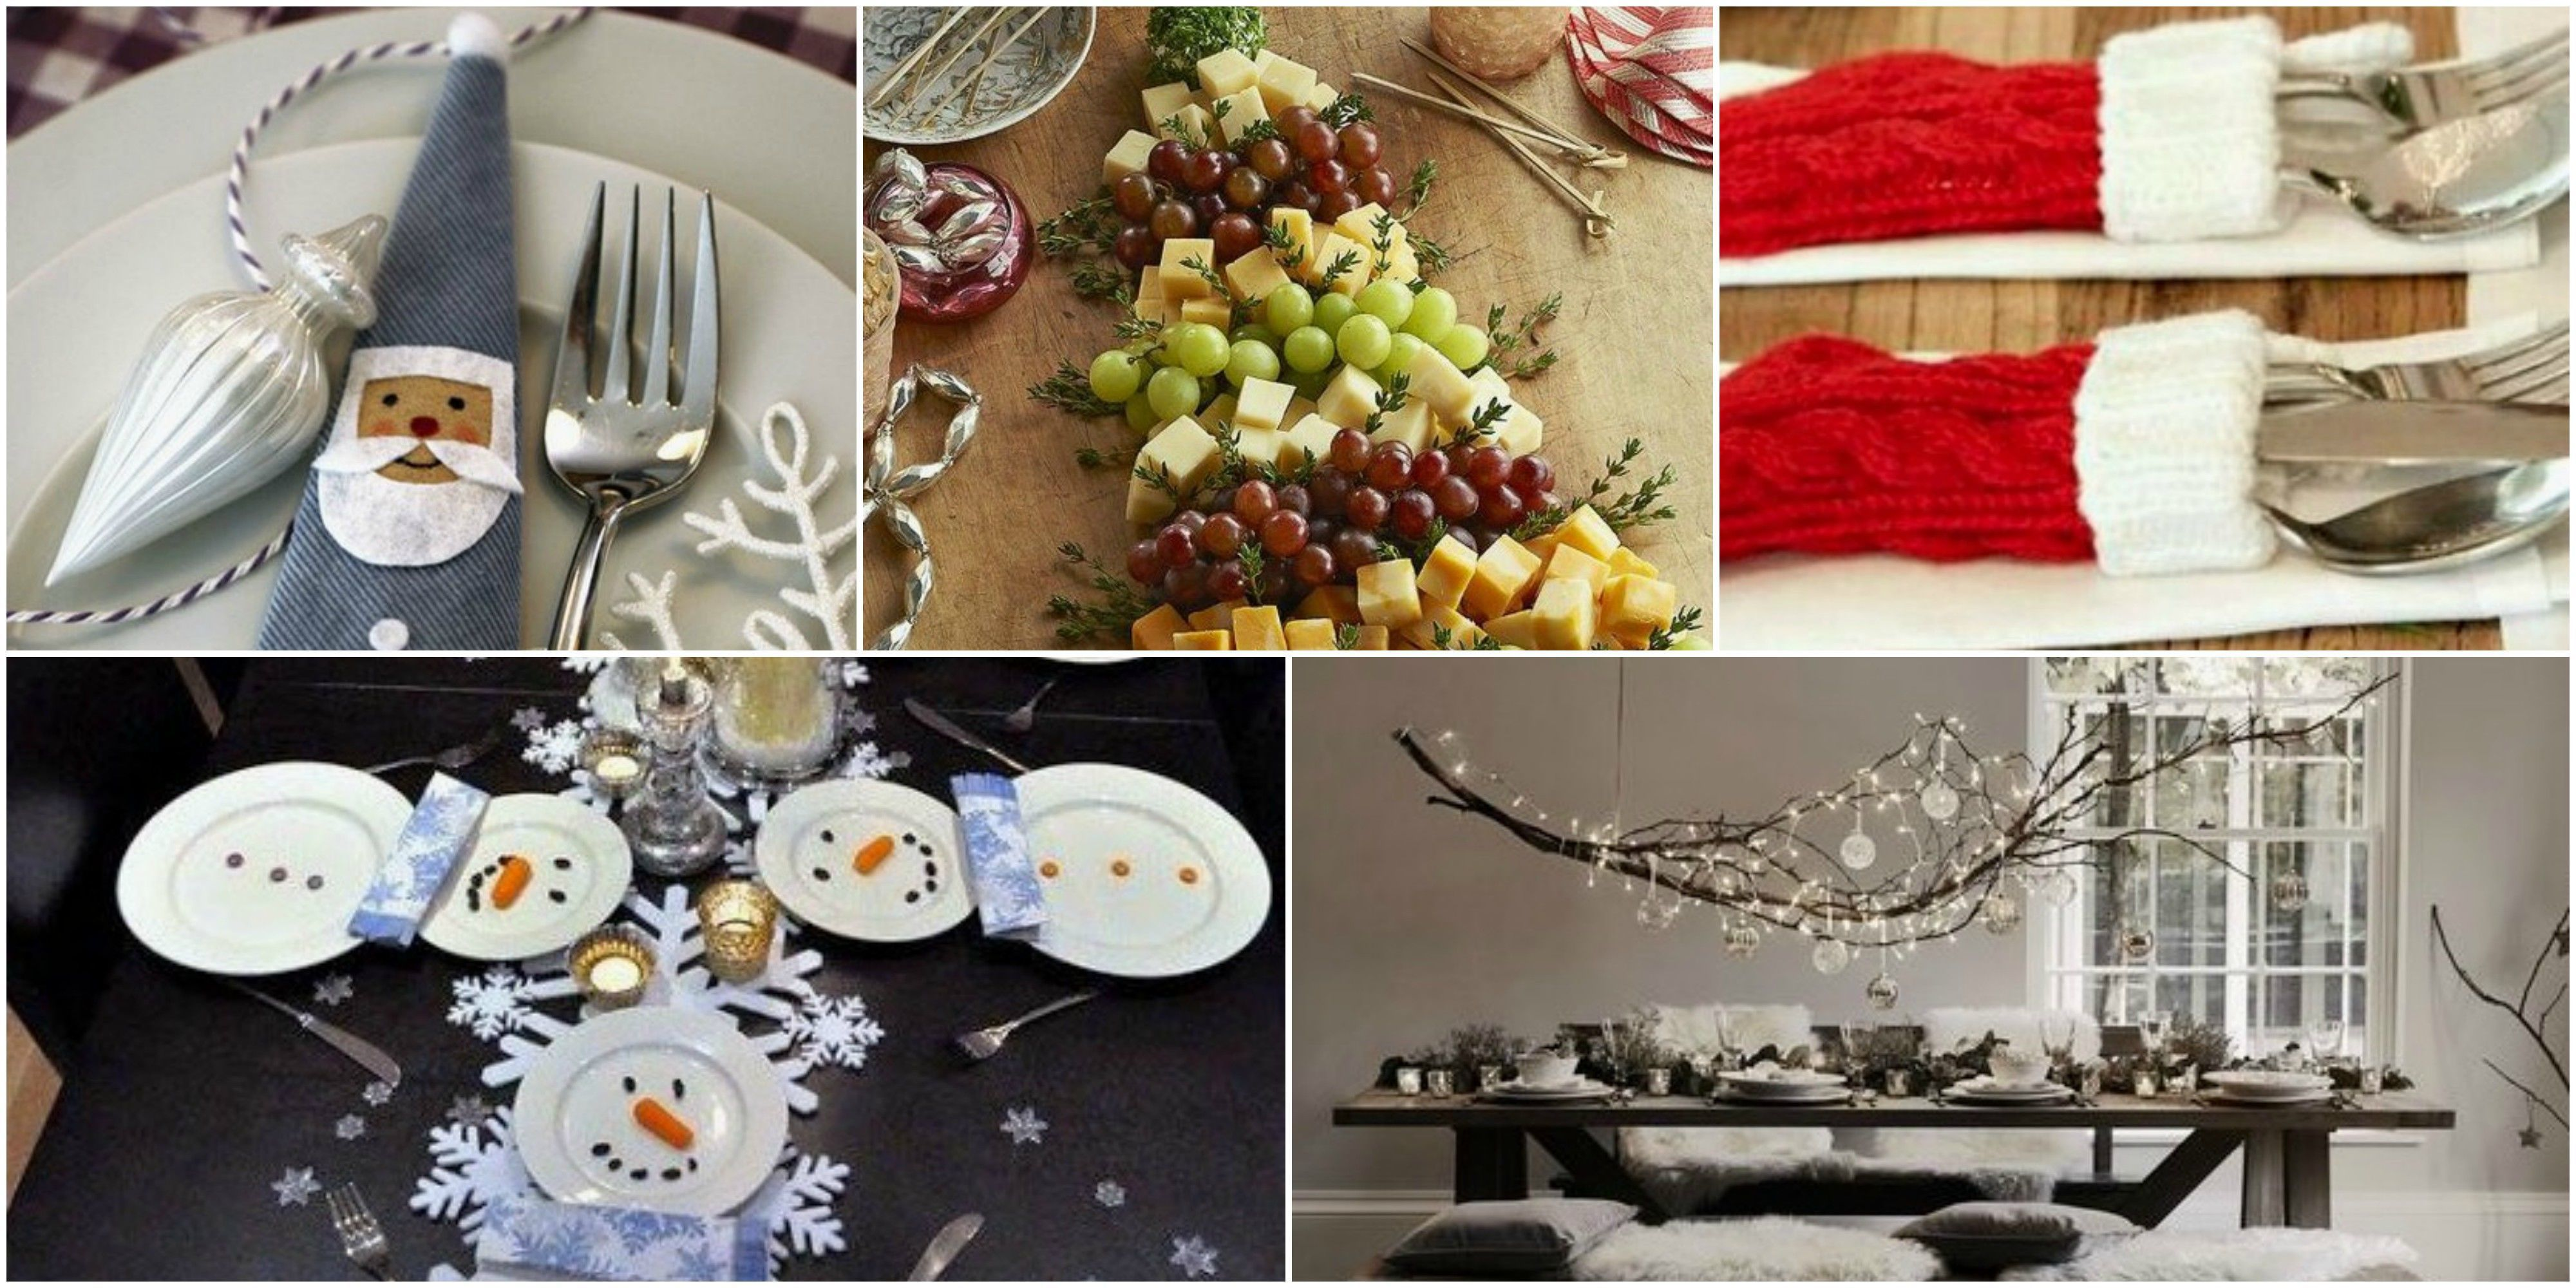 Christmas table setting ideas - Pinterest & 15 Fun and Quirky Christmas Table Setting Ideas - Christmas Table ...